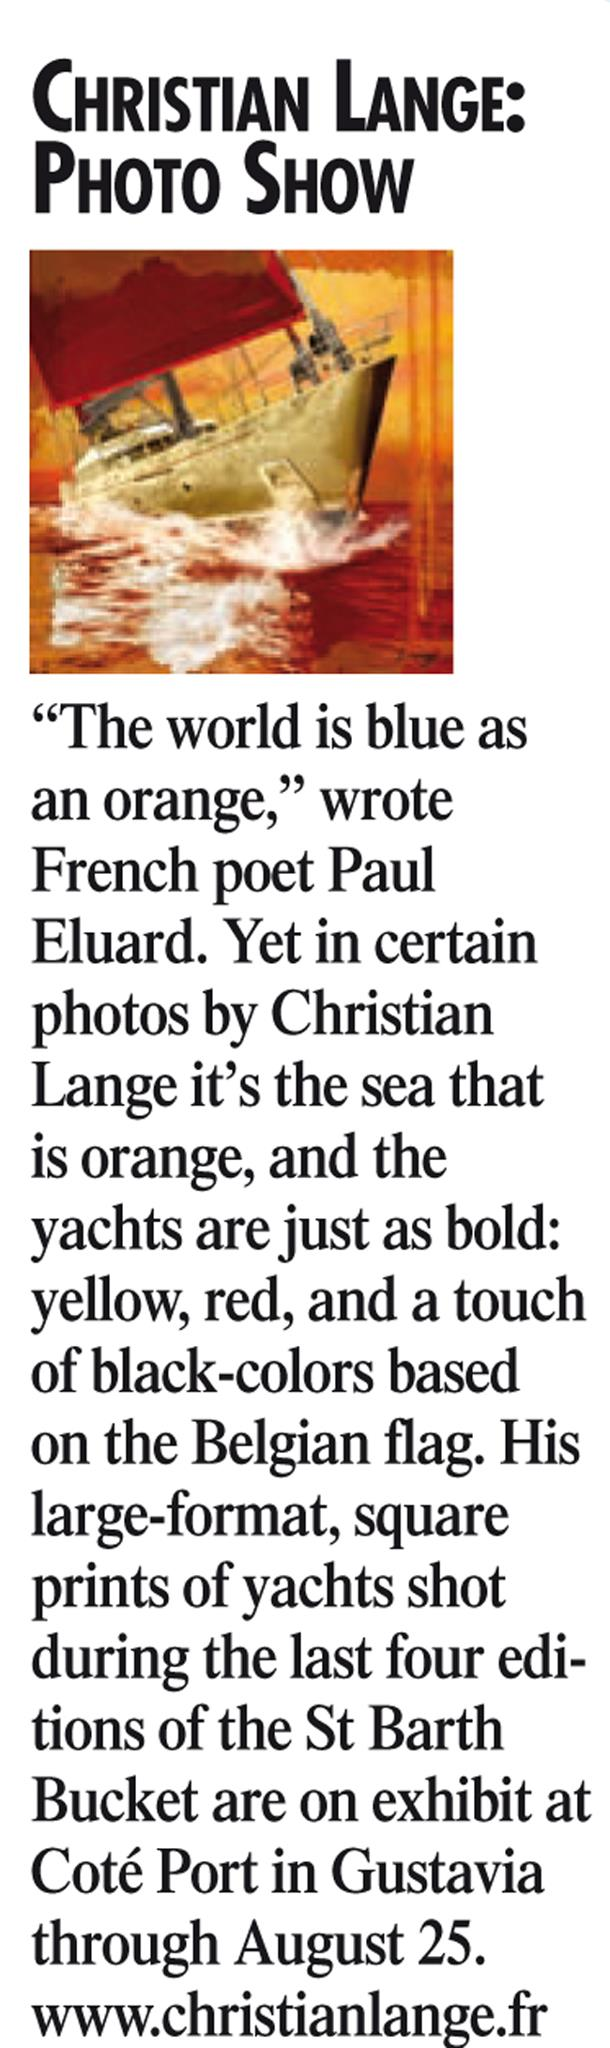 Christian L. Lange - The Weekly - Juillet 2012